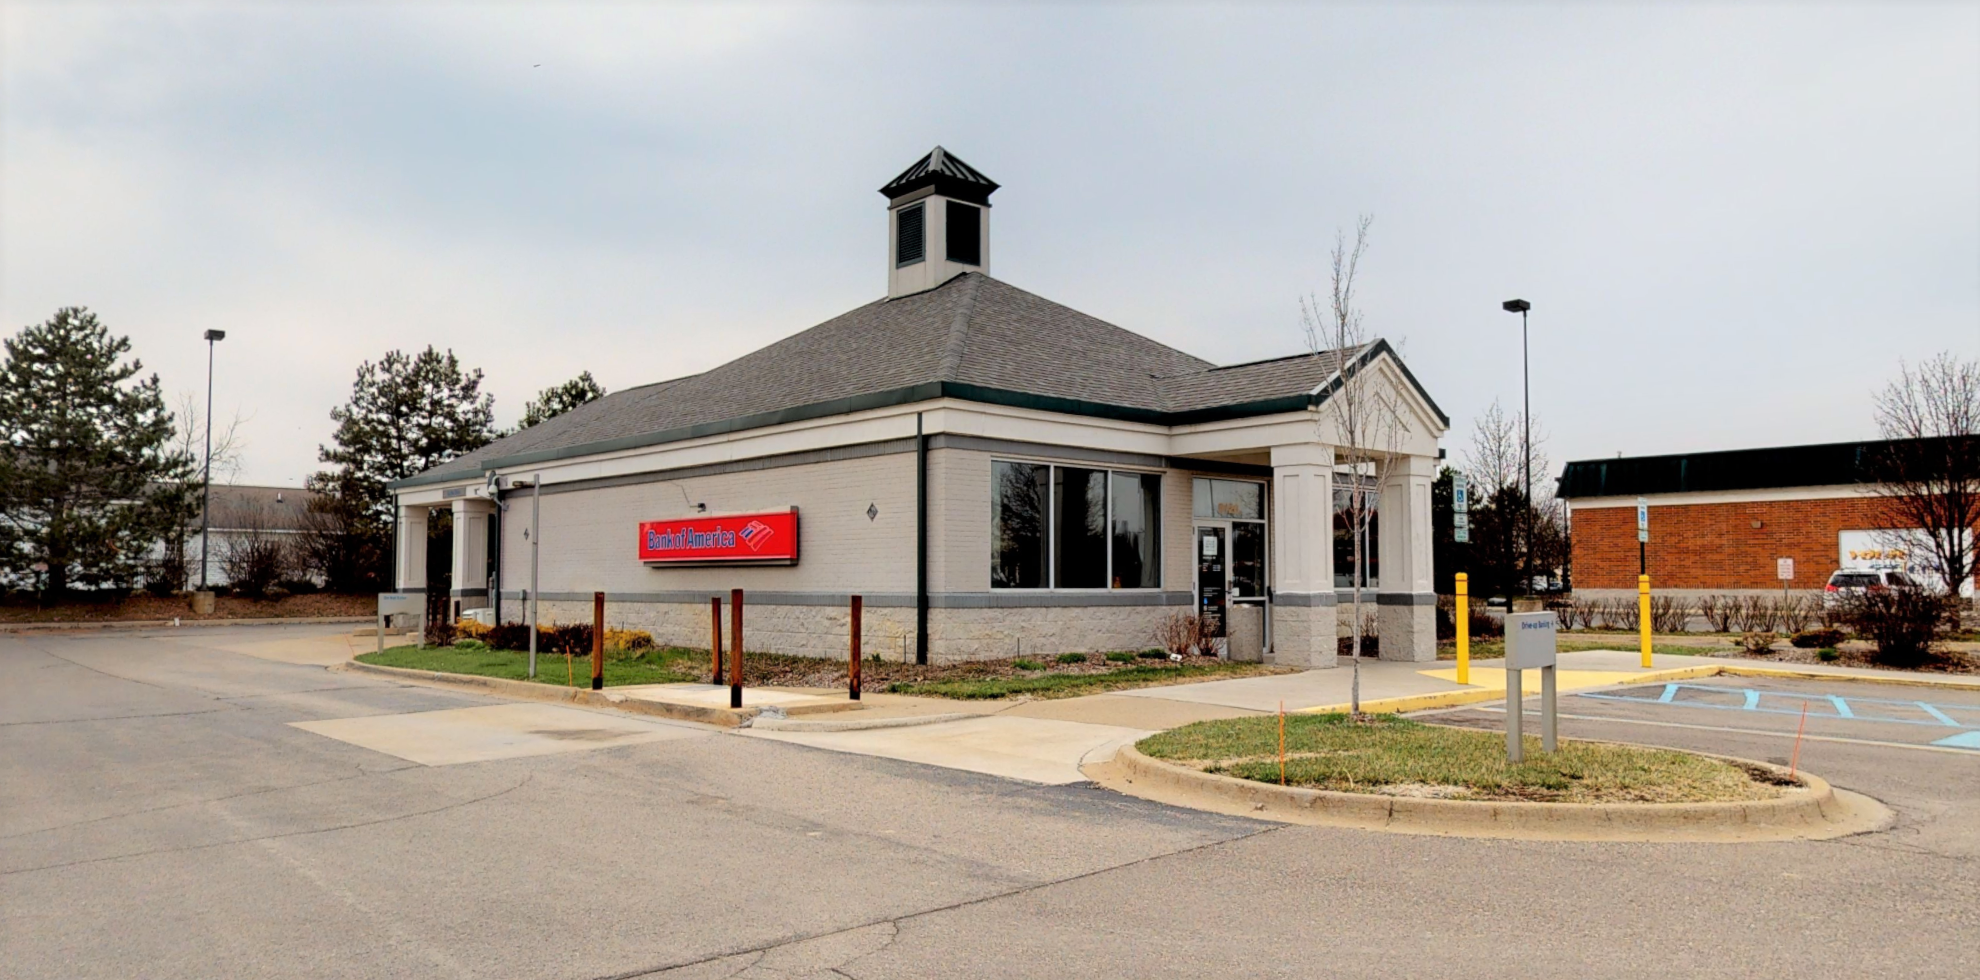 Bank of America financial center with drive-thru ATM | 9120 Highland Rd, White Lake, MI 48386